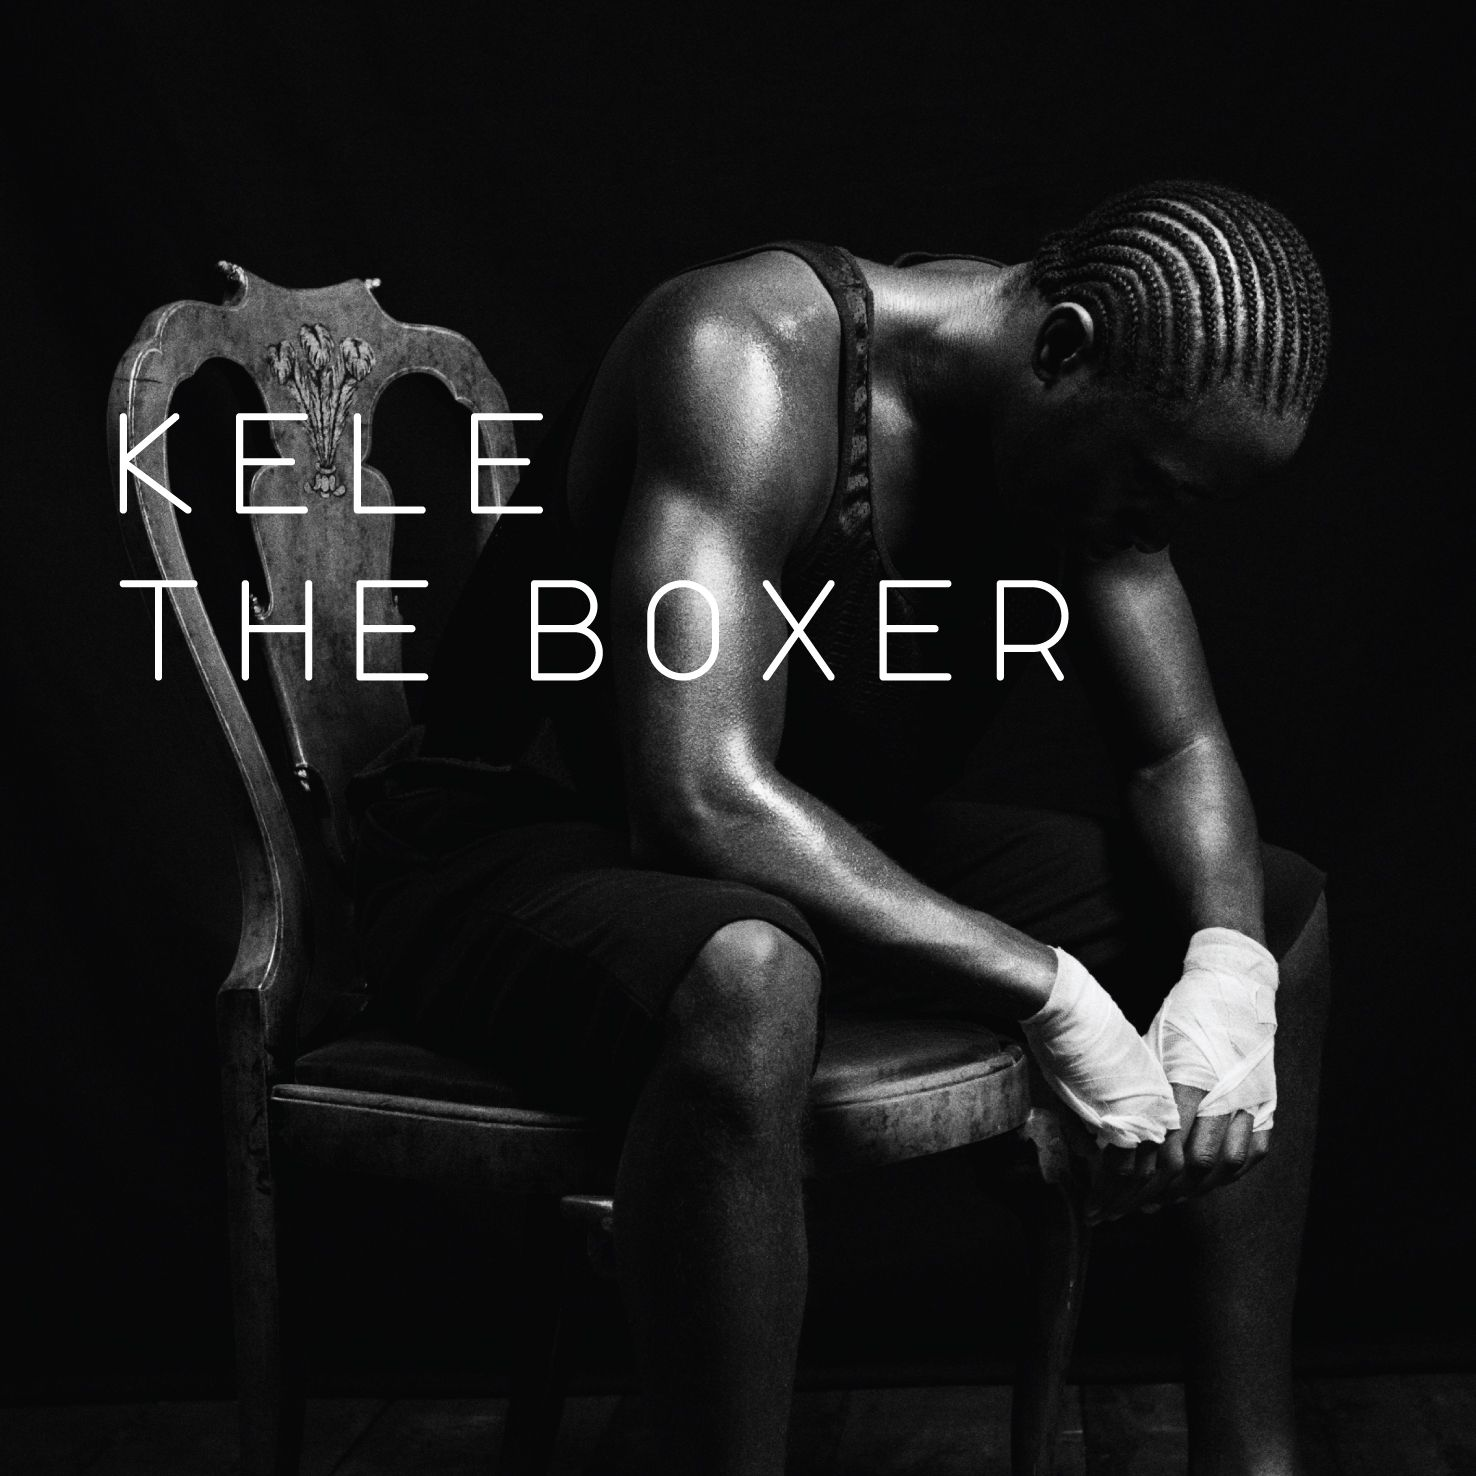 The Boxer By Kele Music Album Covers Boxer Fearless Album